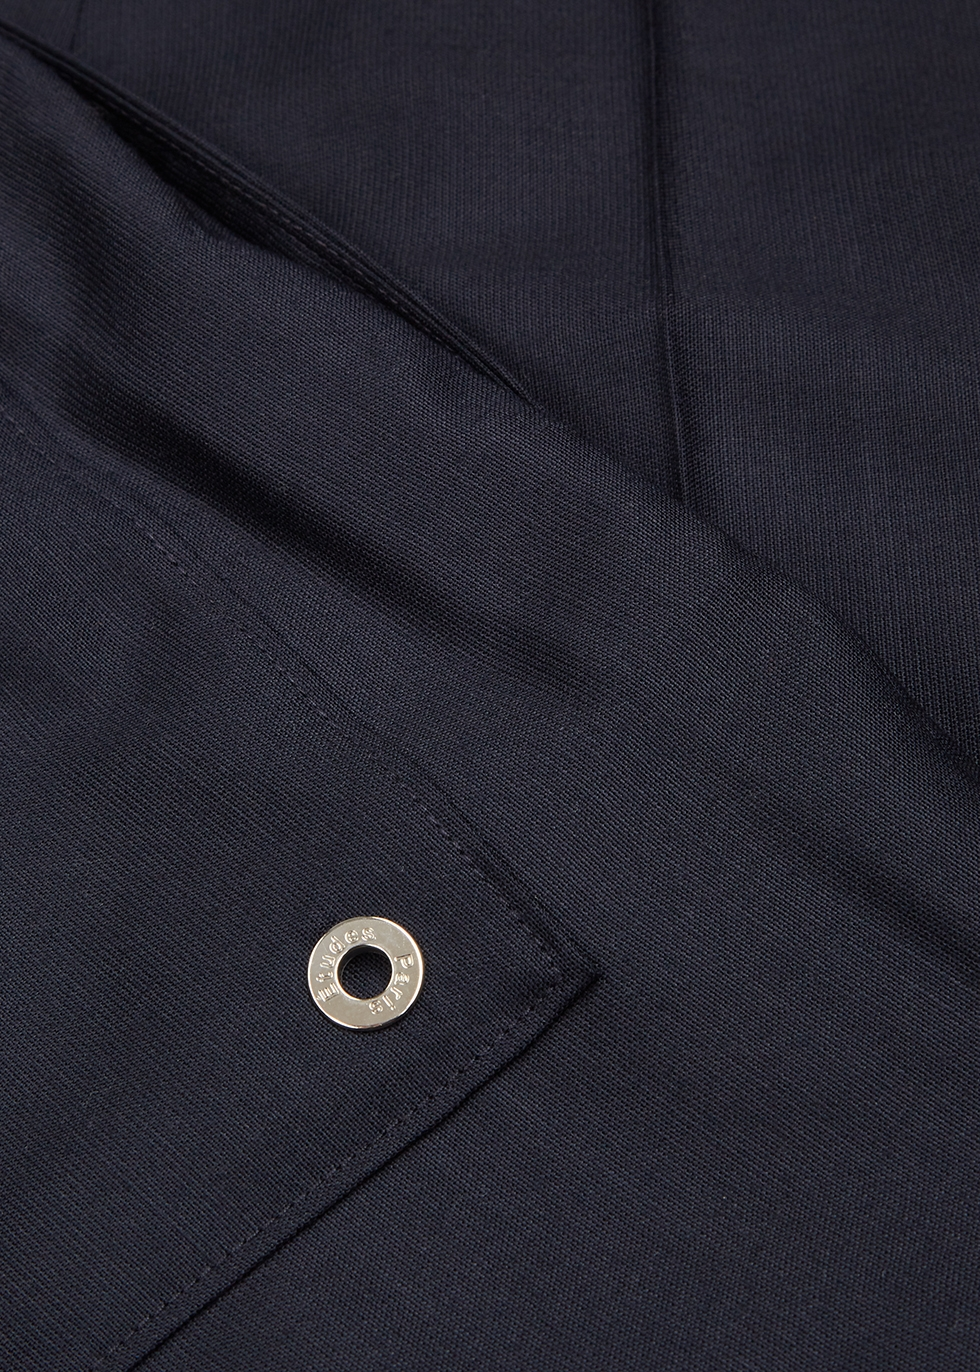 Navy tapered wool trousers - Études